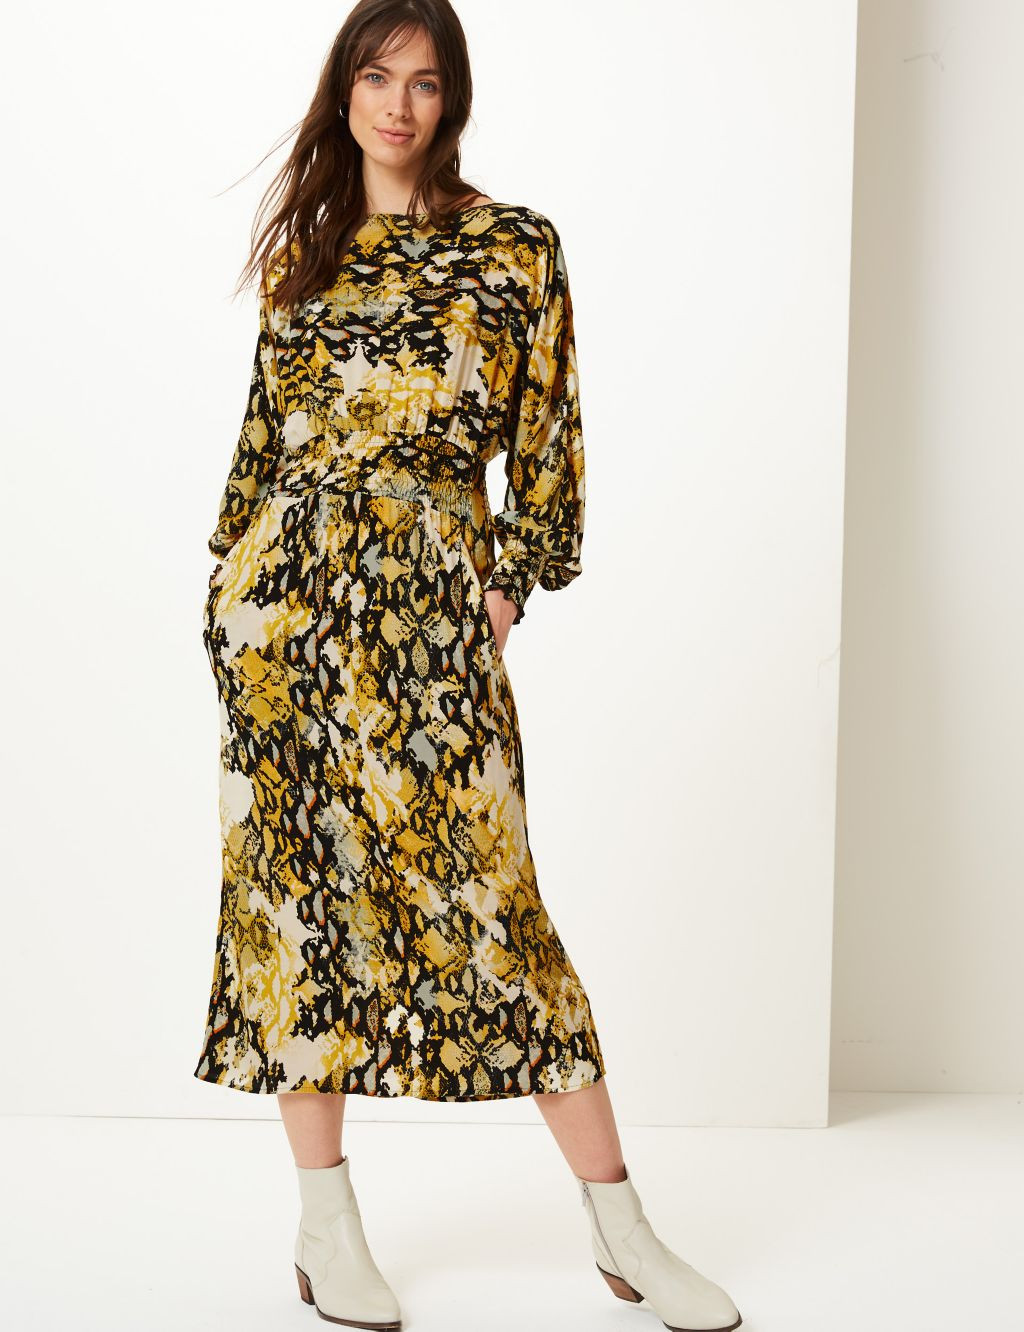 MArks winter midi dress